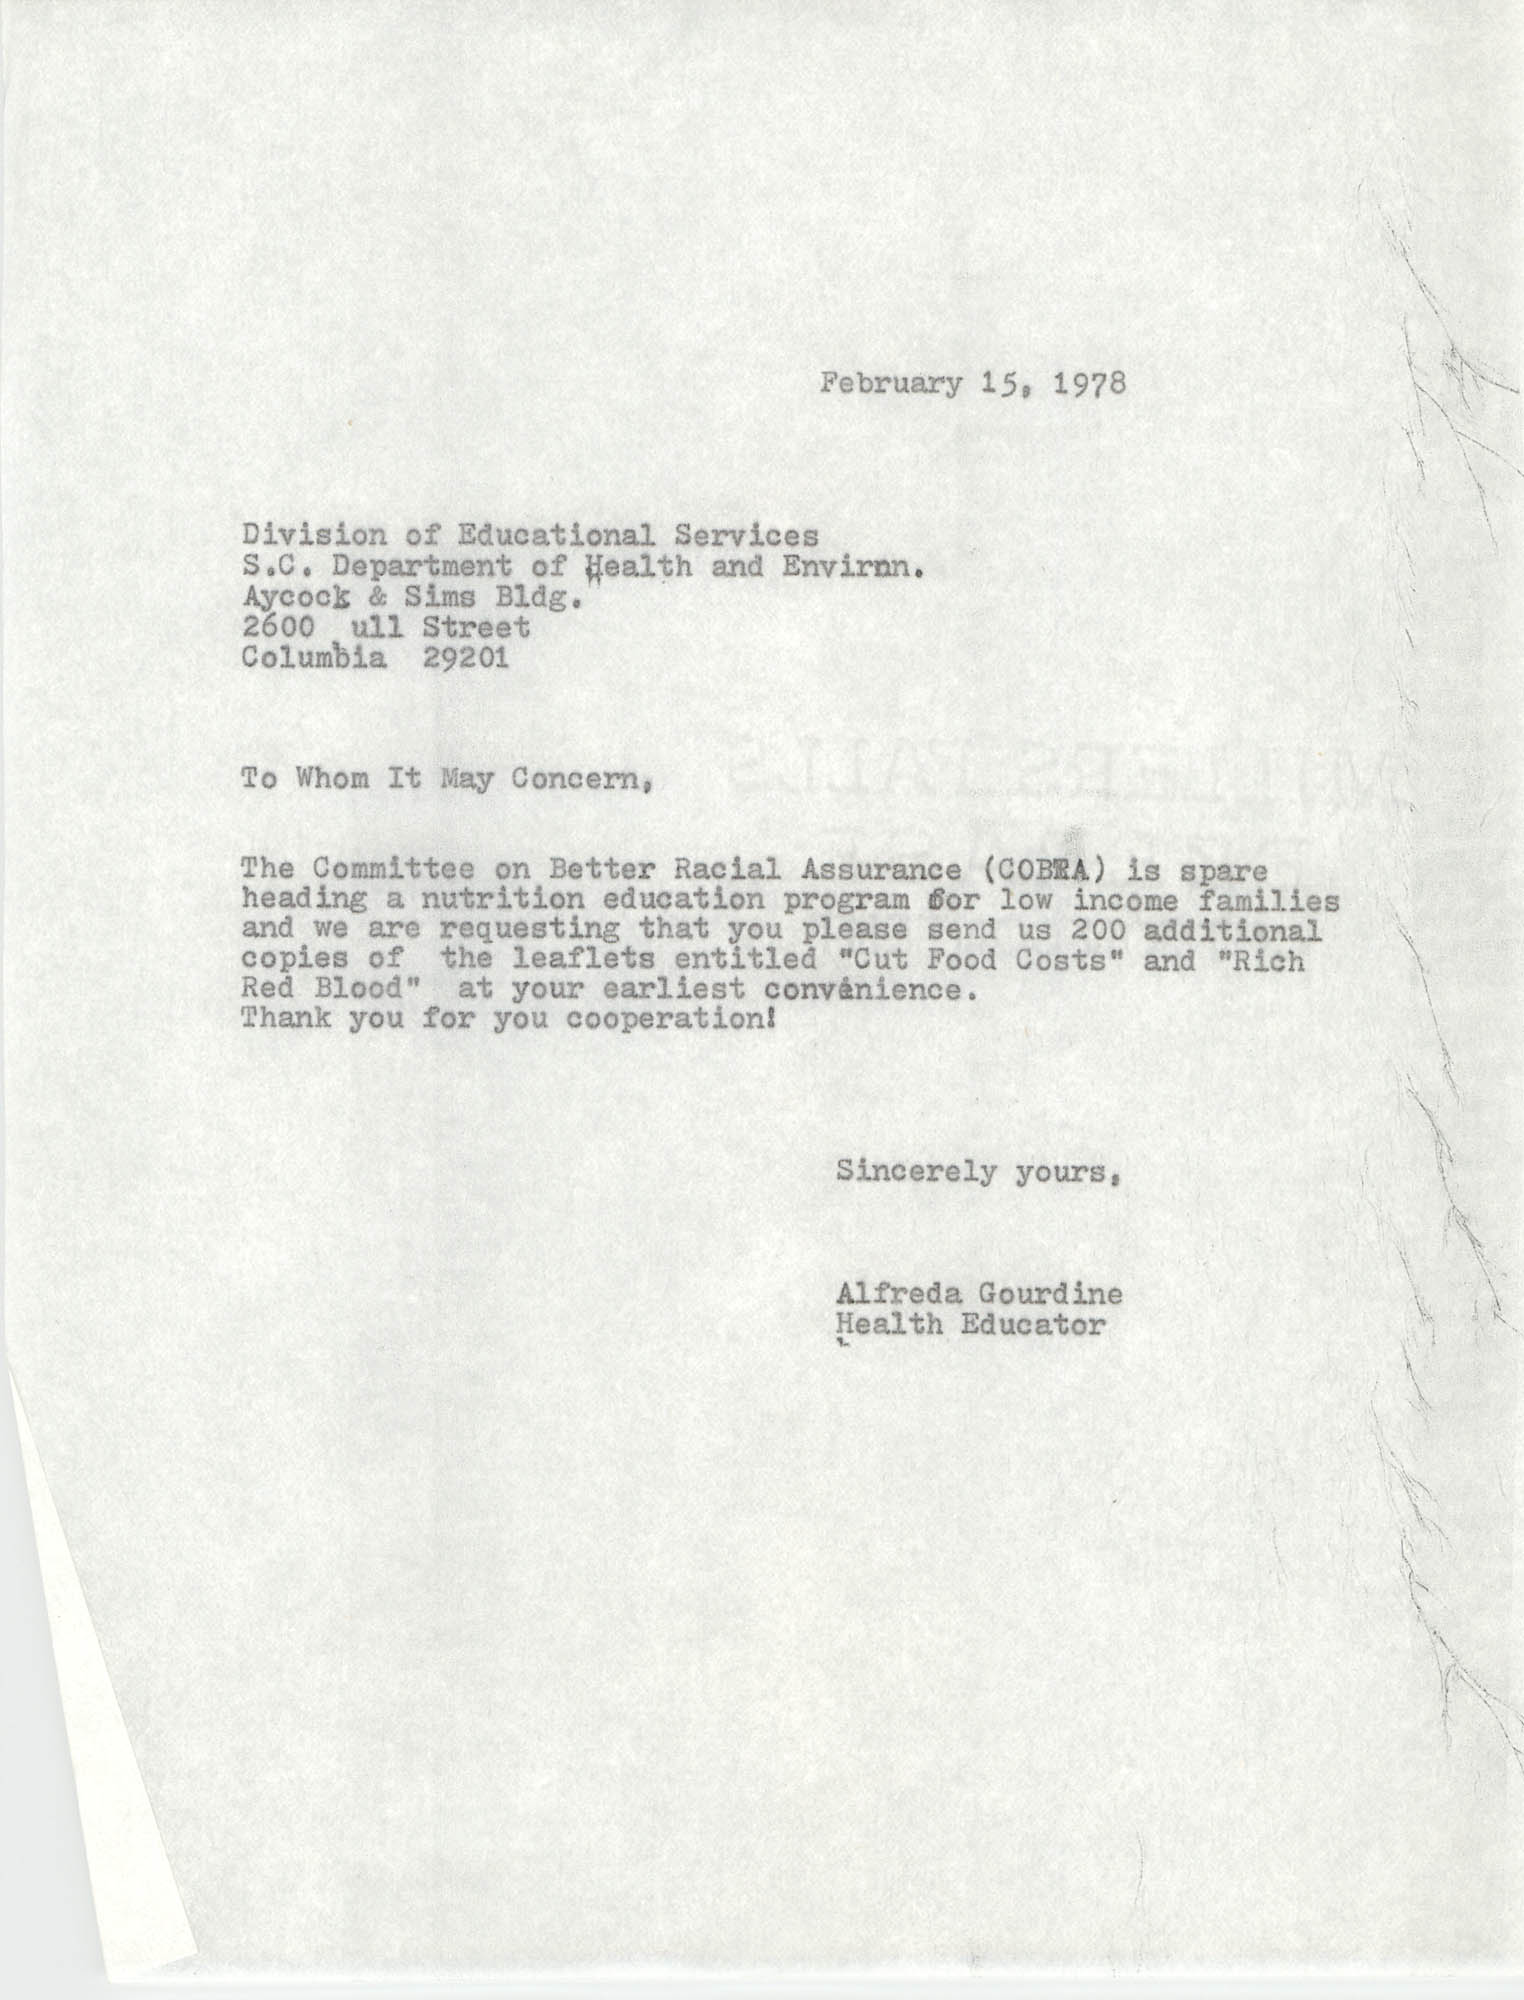 Letter from Alfreda Gourdine to South Carolina Department of Health and Enviroment, February 15, 1978